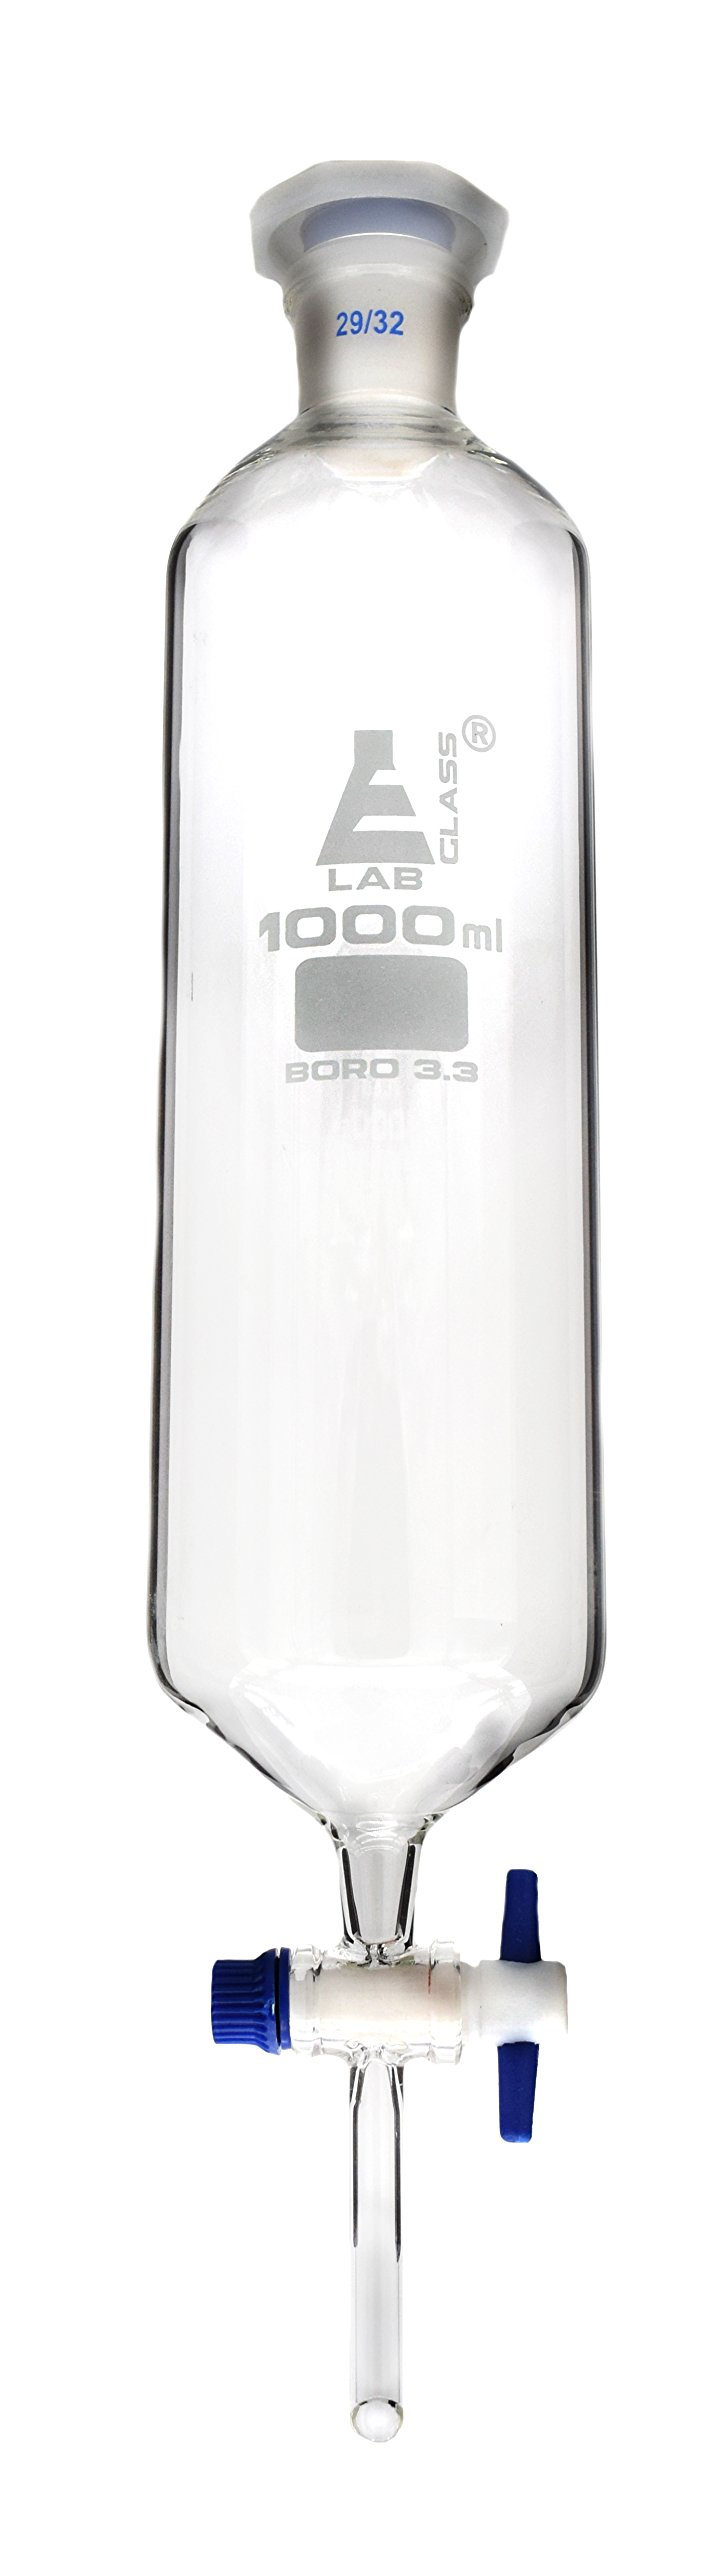 Dropping Funnel, 1000ml, Cylindrical - includes Interchangeable Plastic Stopper, Socket Size 23/32, with PTFE Key Stopcock - Borosilicate Glass - Eisco Labs